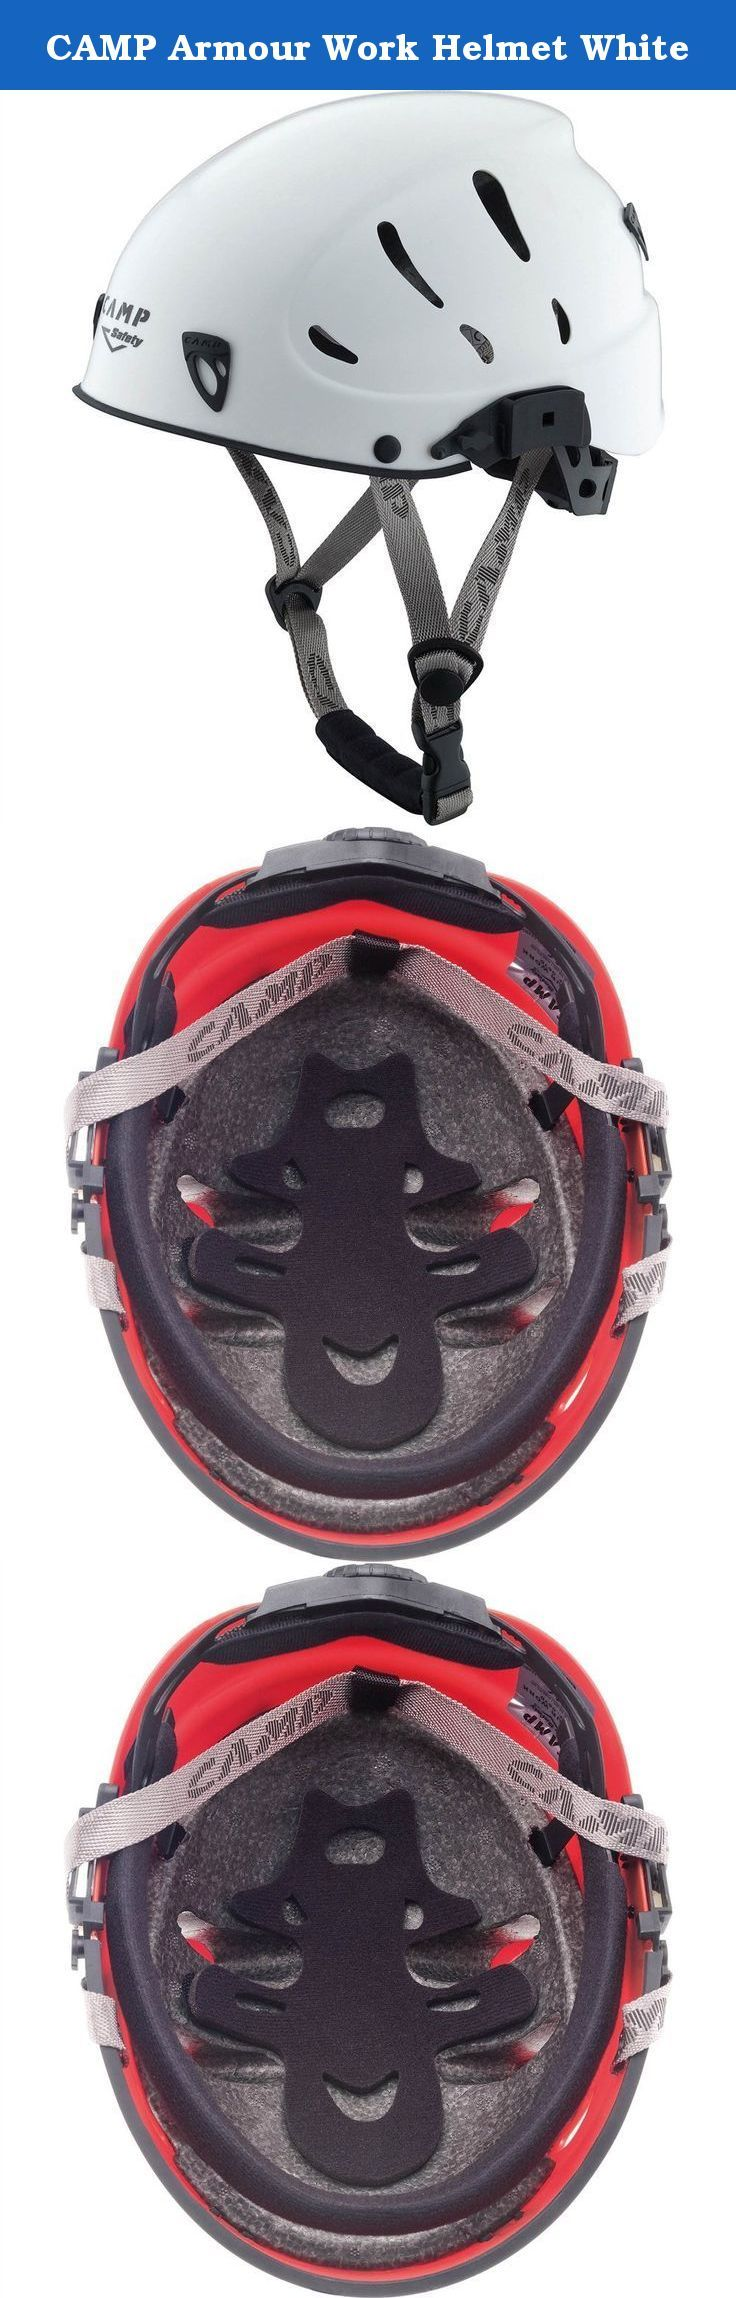 CAMP Armour Work Helmet White. The Armour Work is an upgraded model of the standard Armour and now includes slots for cap attached ear protectors. Armour Work is a light and comfortable helmet with an attractive design, now with a proprietary visor option. Designed for Industrial use. Includes mountaineering certification which meets the new regulations for work at heights, for applications where the chin strap must not be releasable and the helmet can withstand multiple blows from…